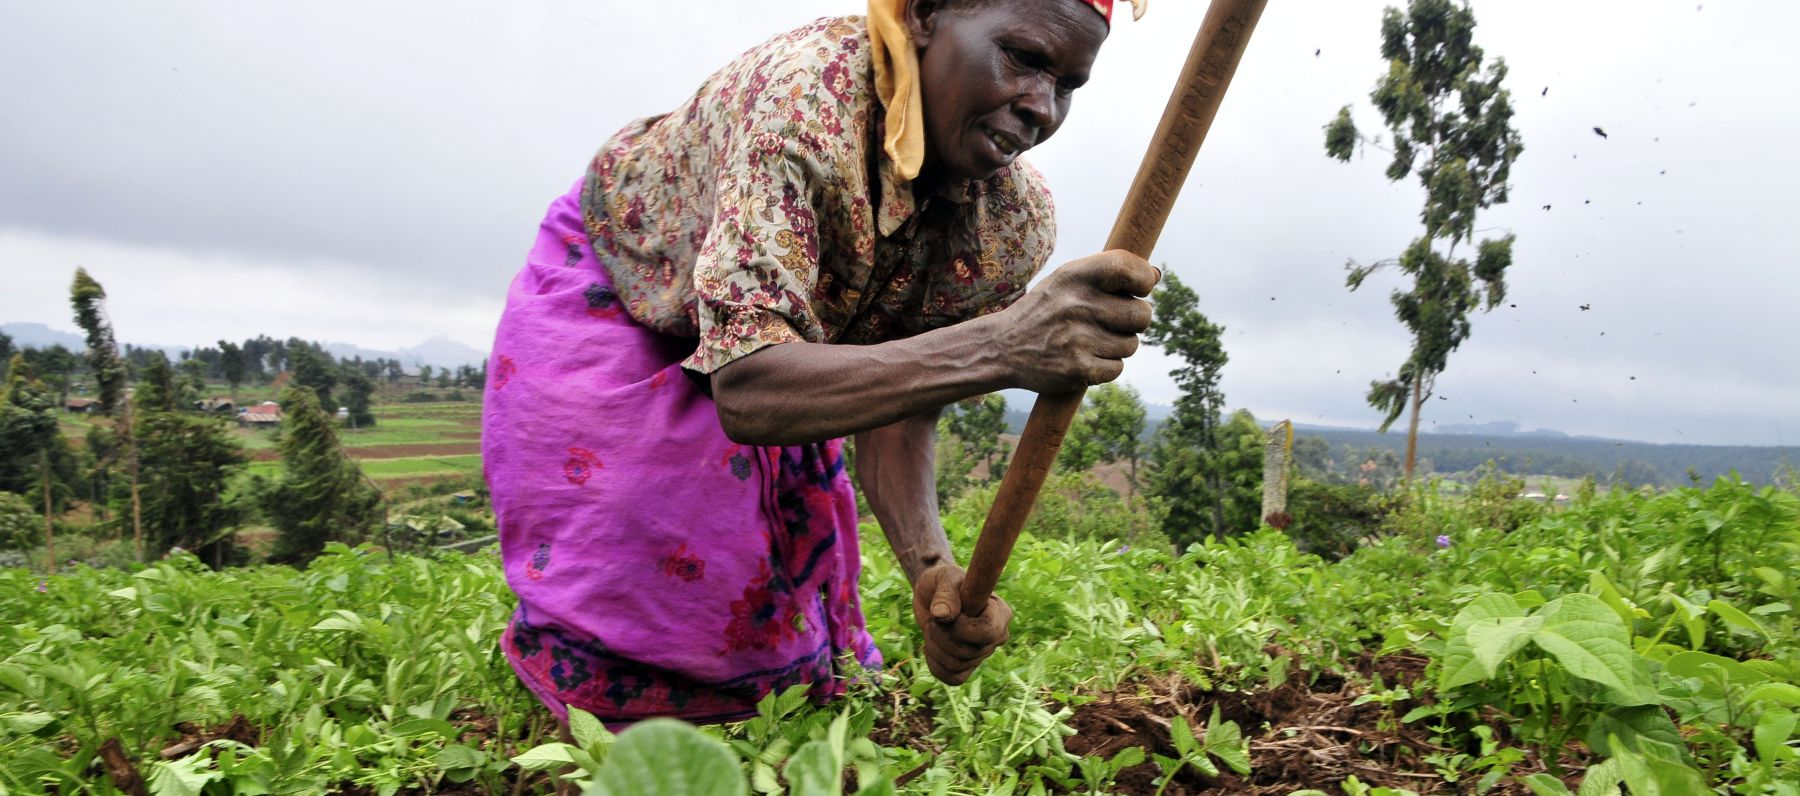 A woman tends to her crop in Kenya.